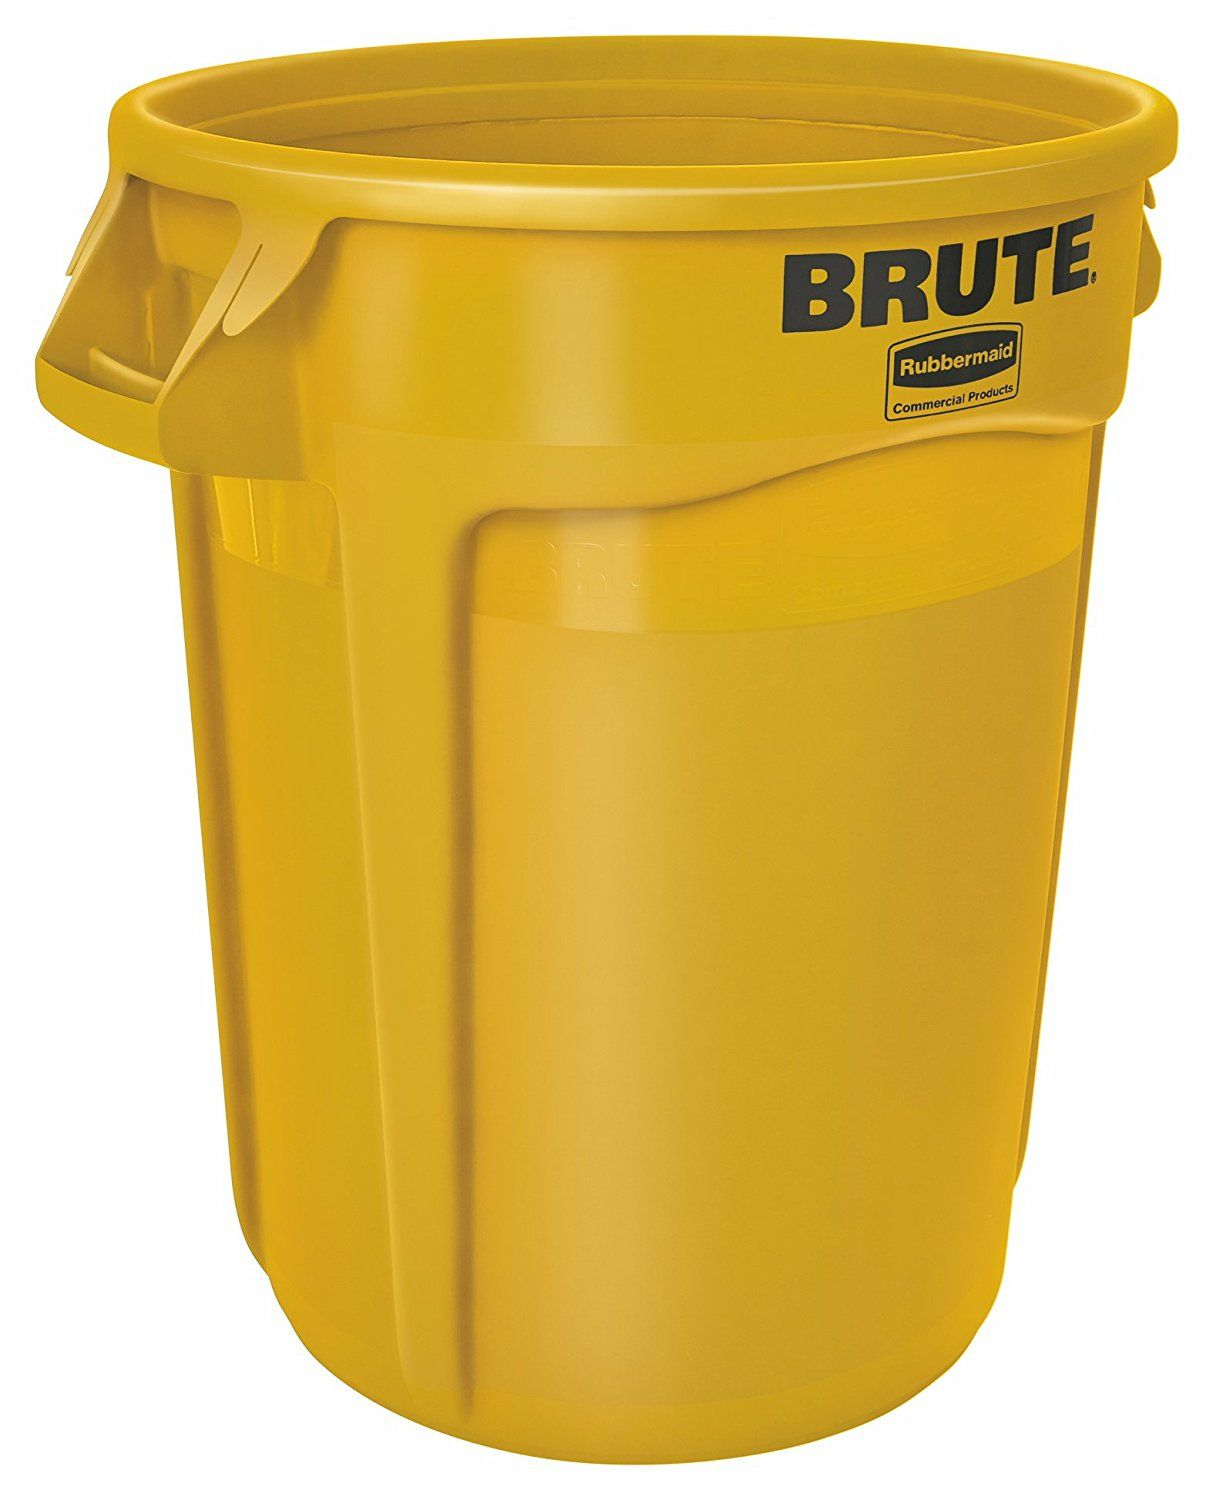 32 Gallon Brute - No Lid - Yellow!   I really need a large can for the basement and all the turning shavings.